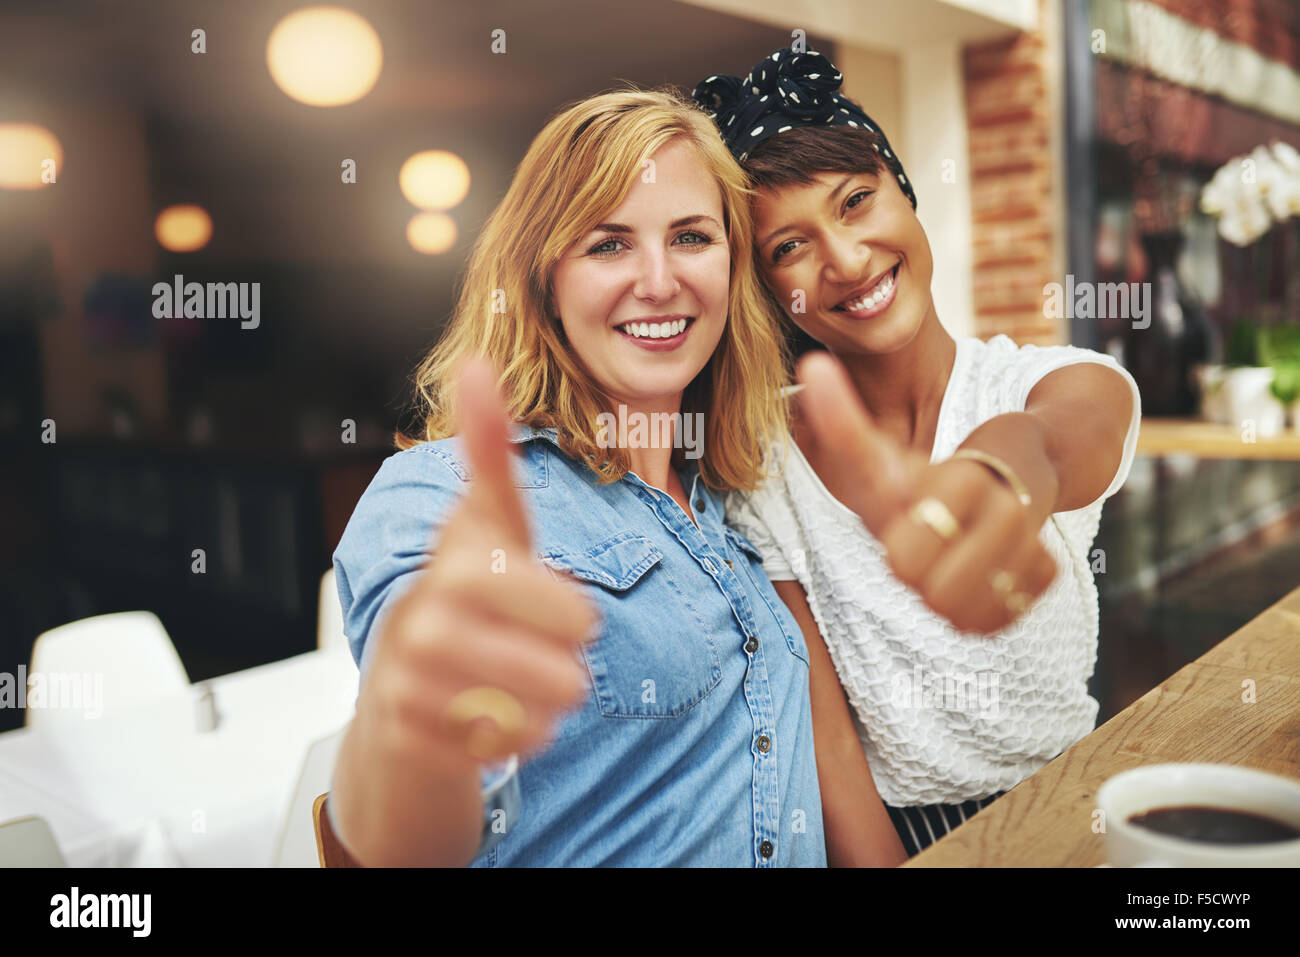 Two happy young female friends giving a thumbs up gesture of approval and success as they sit arm in arm in a cafeteria - Stock Image